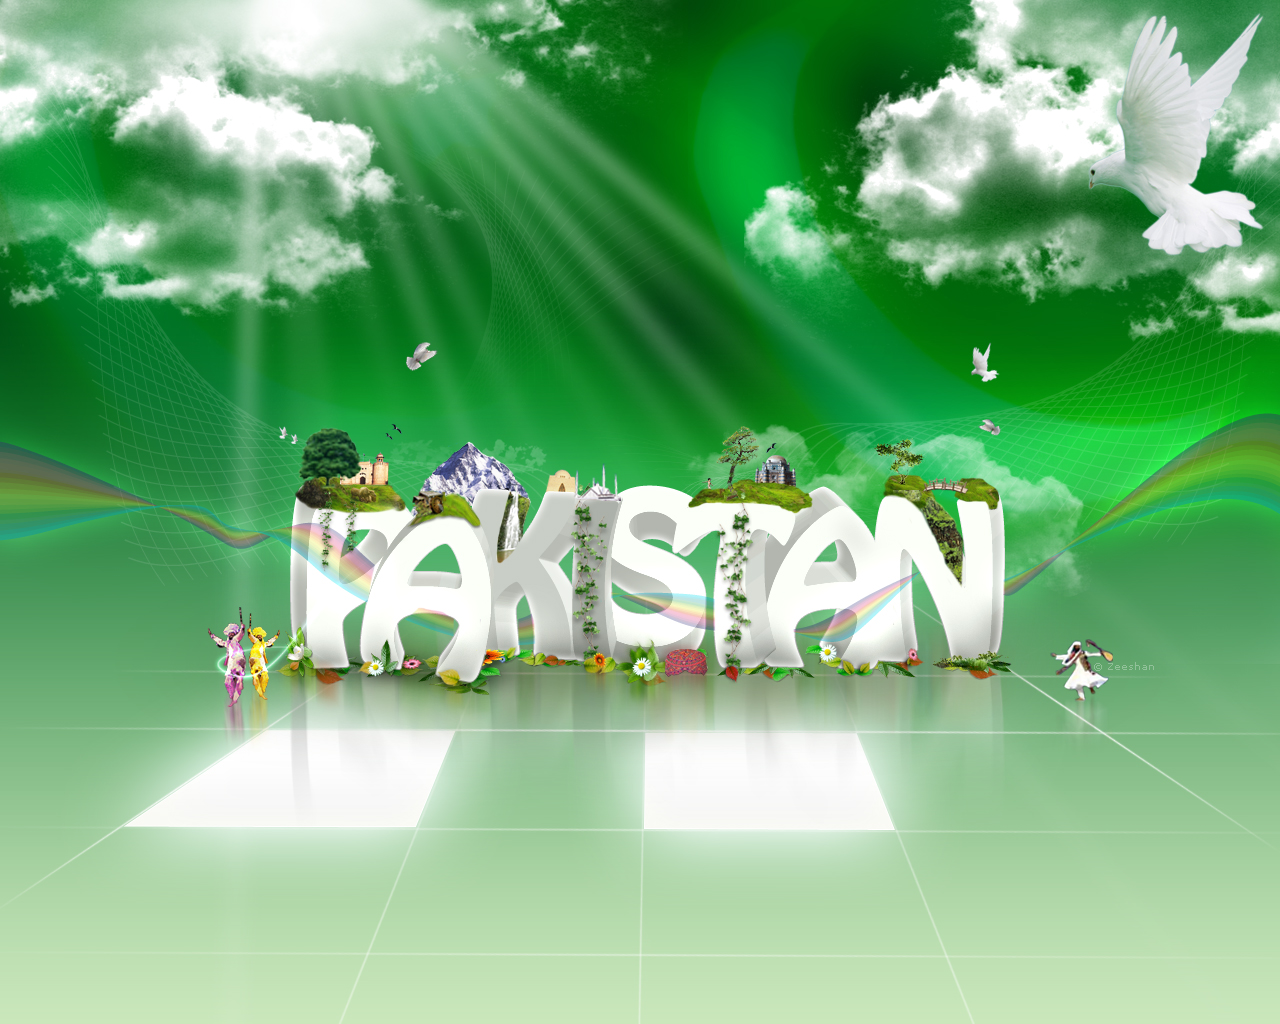 ... pakistan day wallpapers gallery 23 march 2012 pakistan day wallpapers